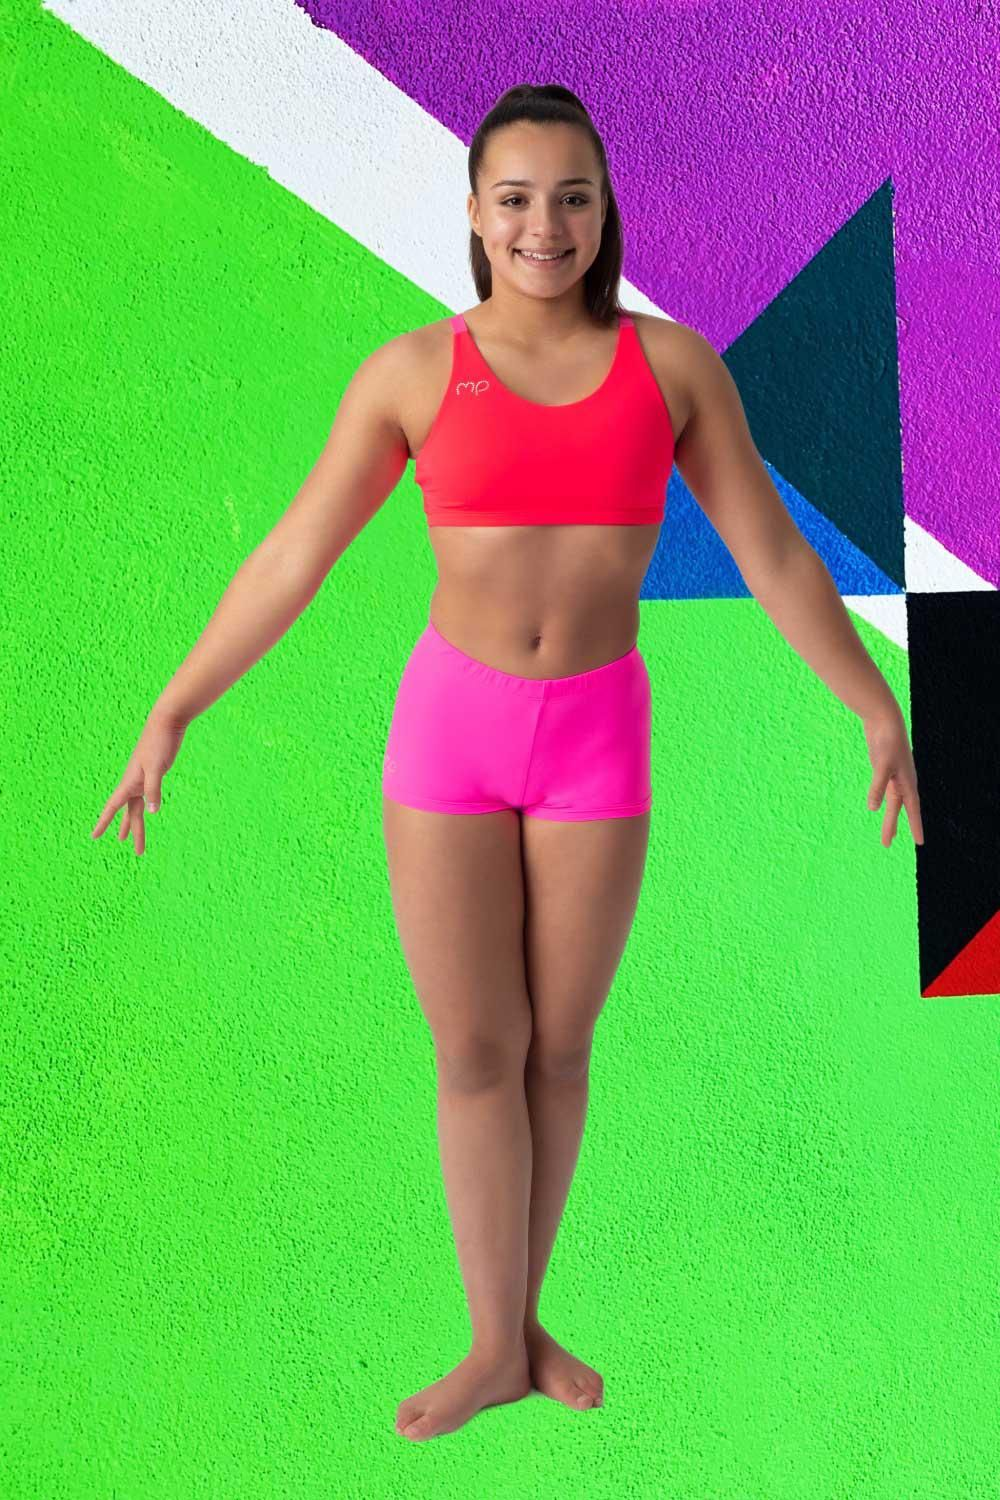 Top Fluo Red Step Out Top